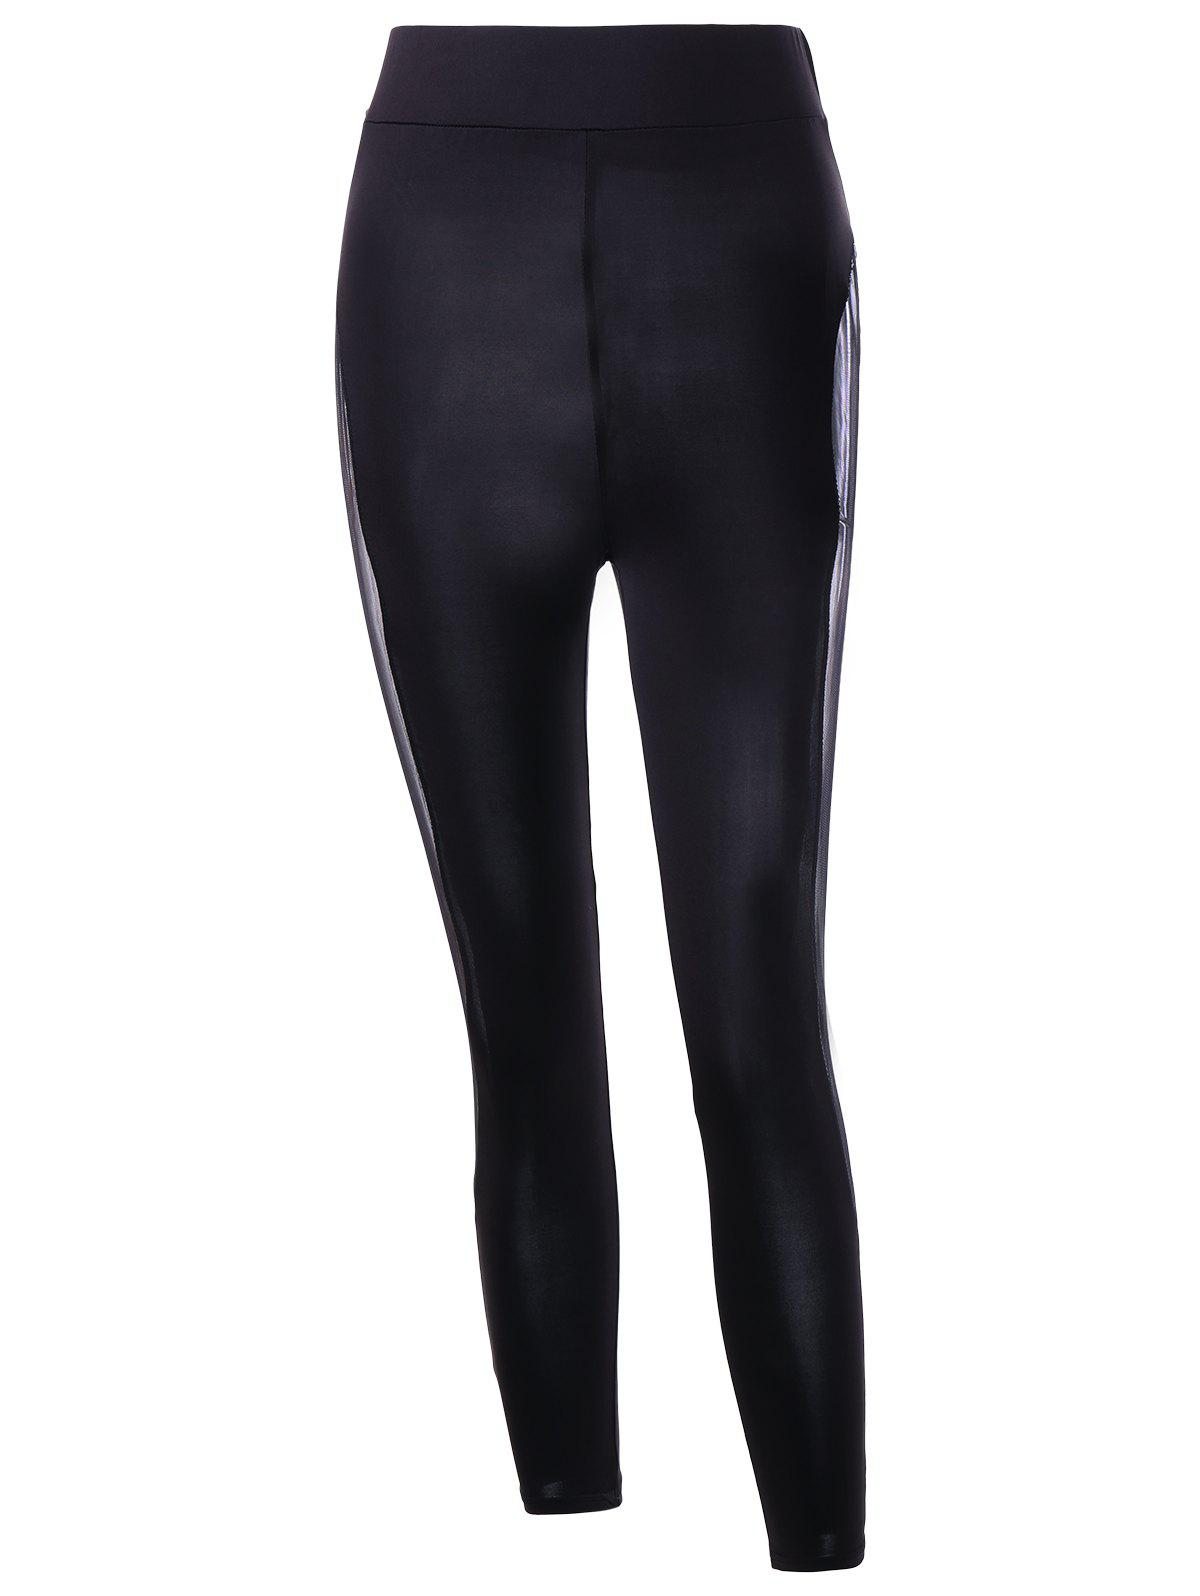 Legging à Empiècement en Tulle Transparent - Noir M